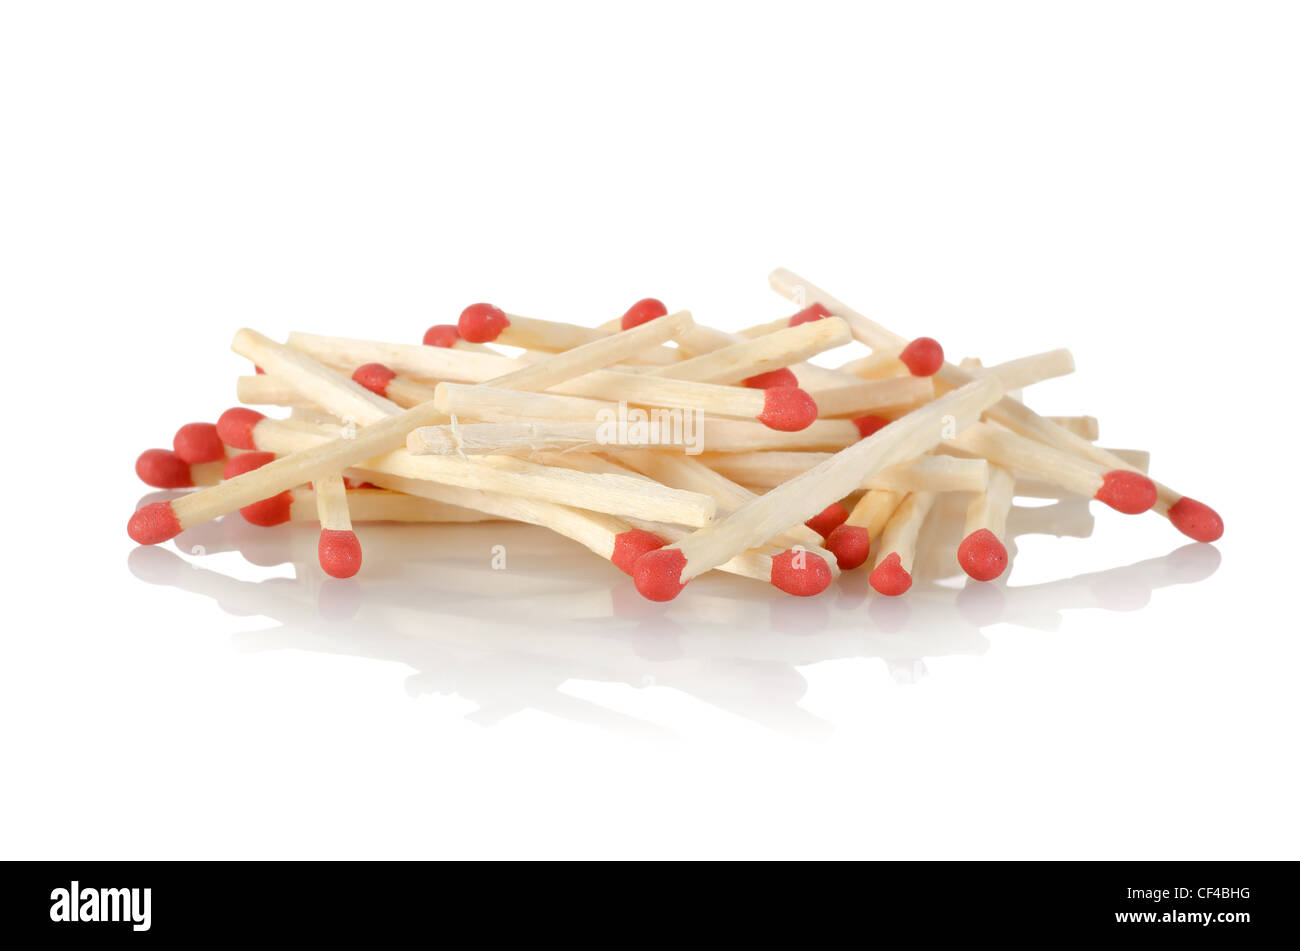 Match sticks isolated on a white background - Stock Image